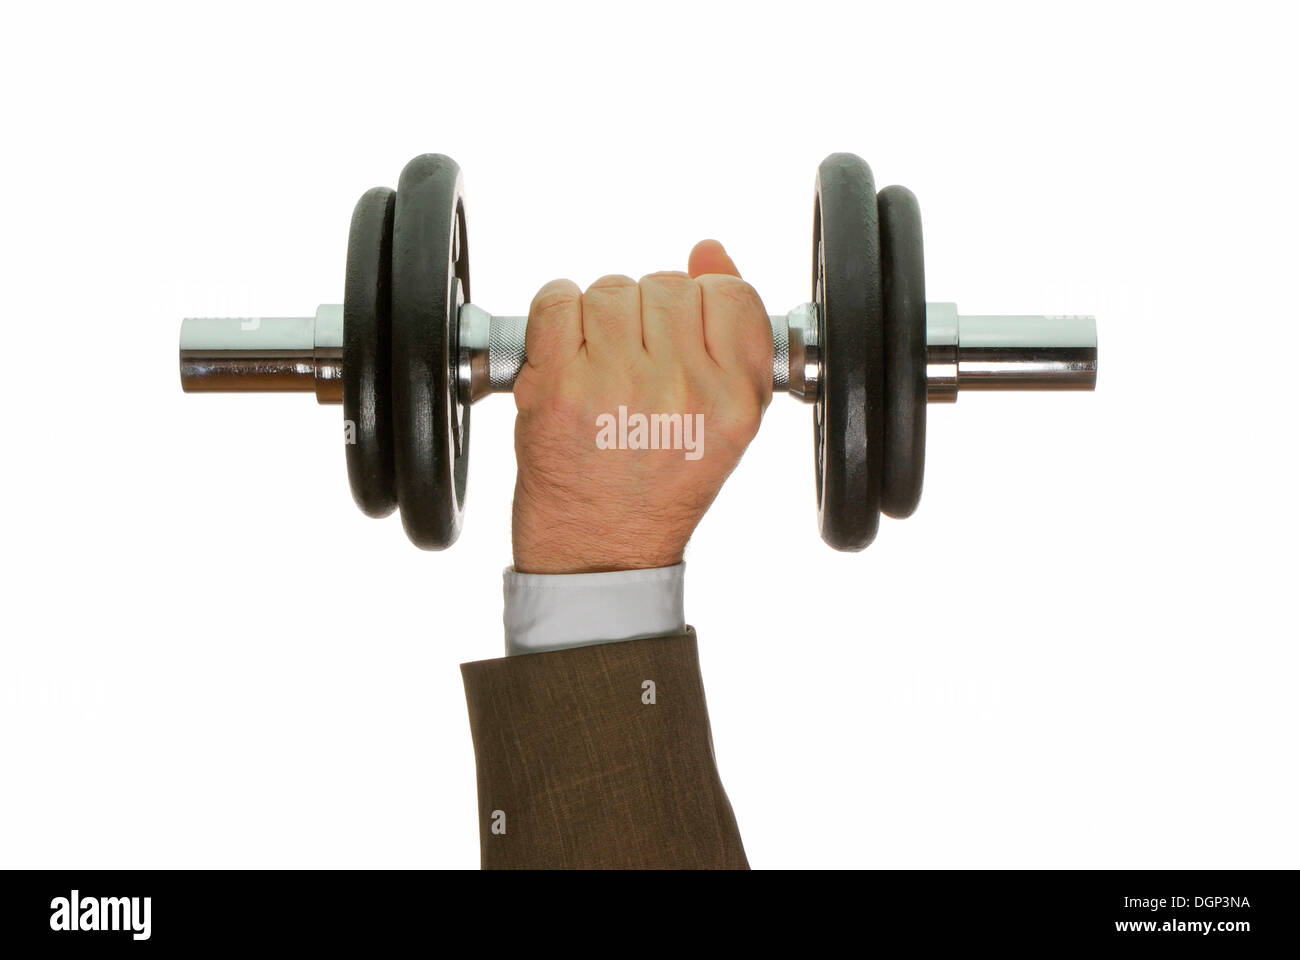 Business man's hand lifting a dumbbell - Stock Image